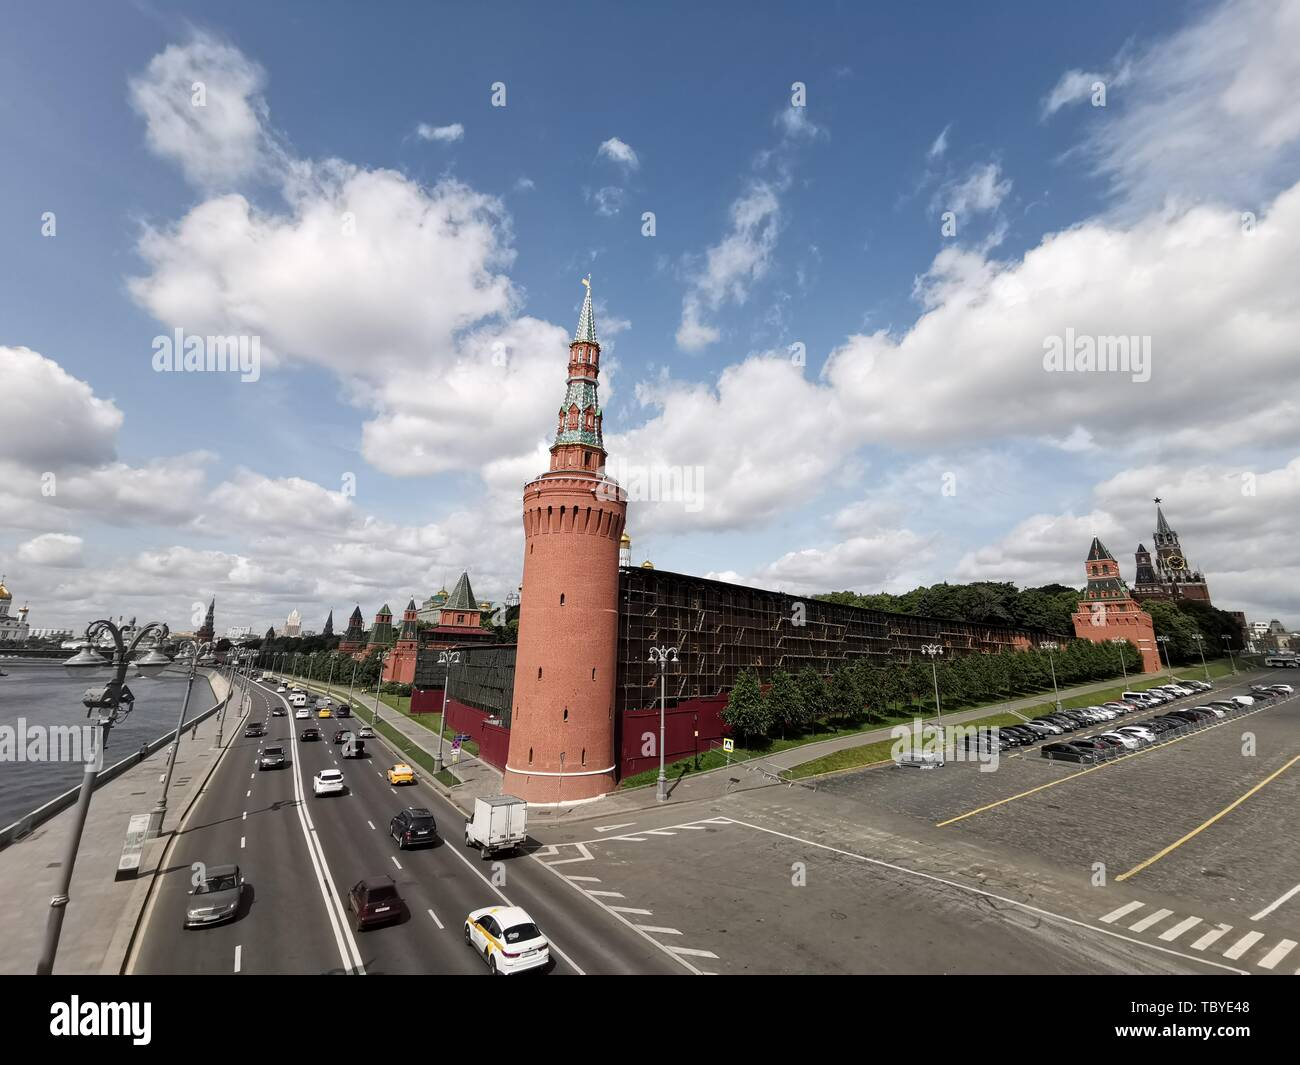 (190604) -- MOSCOW, June 4, 2019 (Xinhua) -- Photo taken on June 3, 2019 shows the Kremlin Palace in Moscow, capital of Russia. Chinese President Xi Jinping will pay a state visit to Russia from June 5 to 7 at the invitation of Russian President Vladimir Putin, a Chinese Foreign Ministry spokesperson announced on Wednesday at a press briefing.     Xi will also attend the 23rd St. Petersburg International Economic Forum during his stay, according to spokesperson Lu Kang. (Xinhua/Lai Xiangdong) - Stock Image